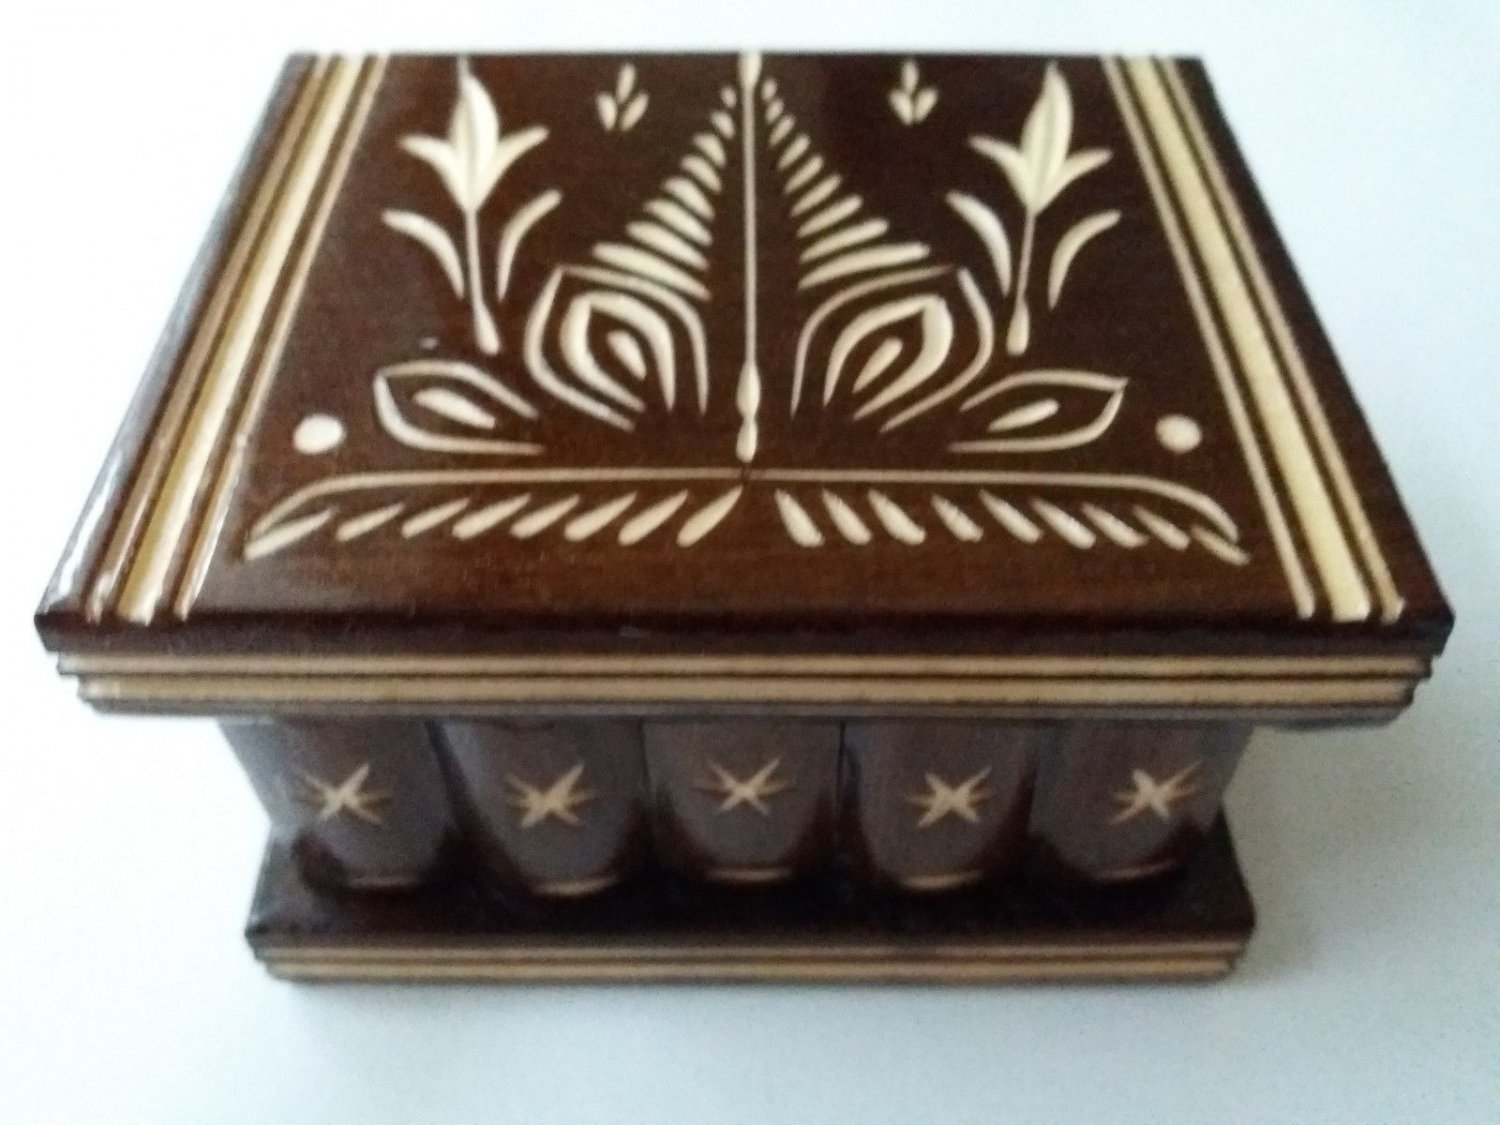 New cute handmade brown wooden secret magic puzzle jewelry ring holder box gift